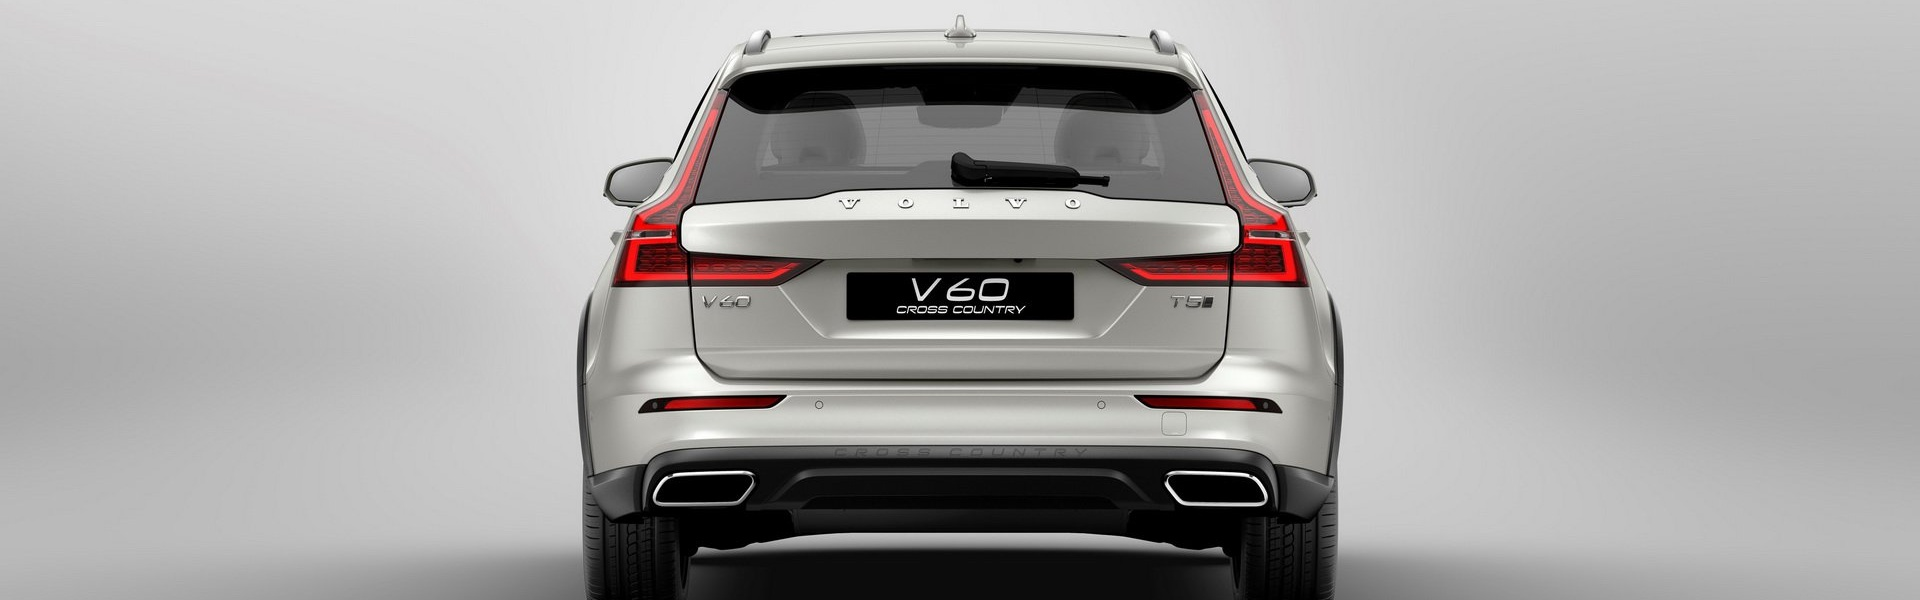 3c589697-volvo-v60-cross-country-all-new-unveiled-19.jpg